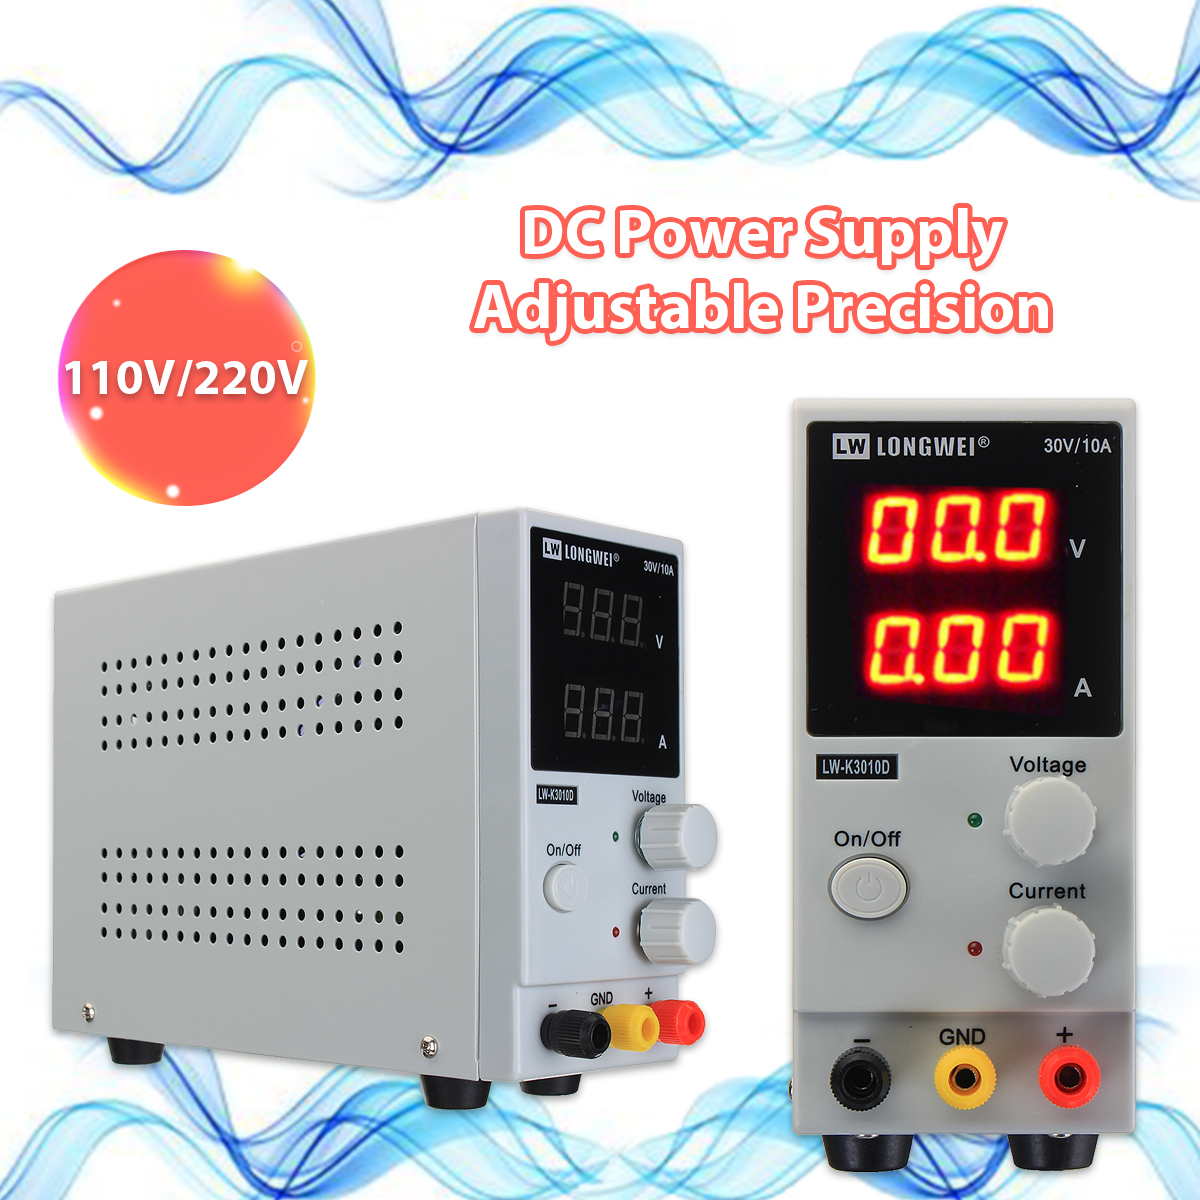 0-10A 0-30V 220V LCD DC Power Supply Variable Adjustable Switching Regulated Power Supply Digital Laboratory Voltage Regulator 0 30v 0 20a output brand new digital adjustable high power switching dc power supply variable 220v